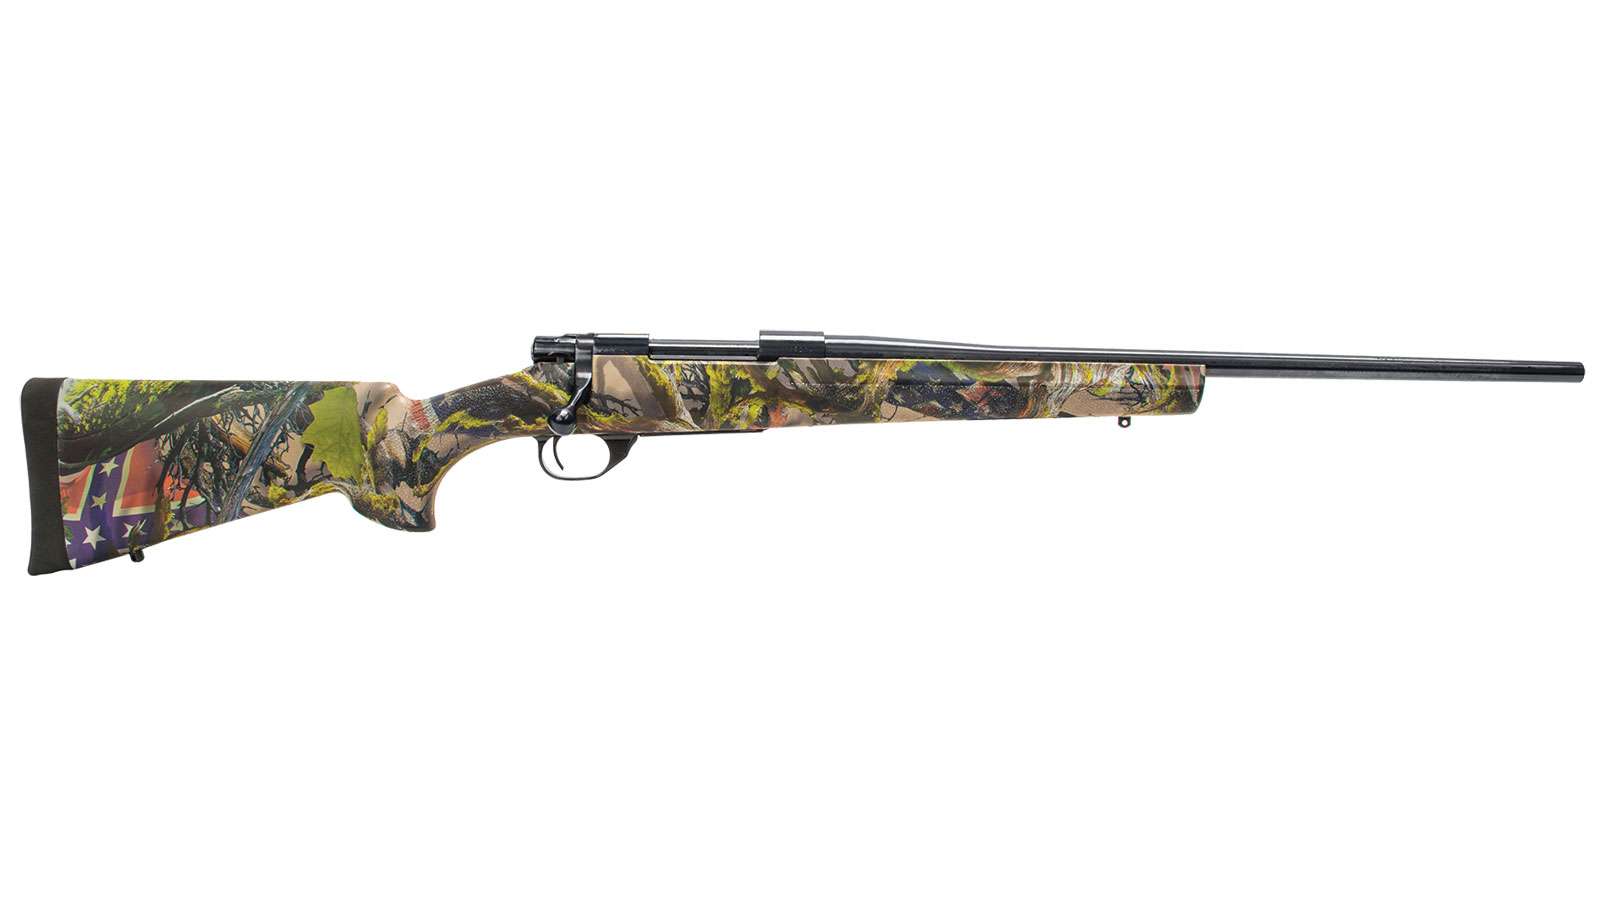 Howa 1500 Lightning Southern Comfort .30-06 22-inch 4rd